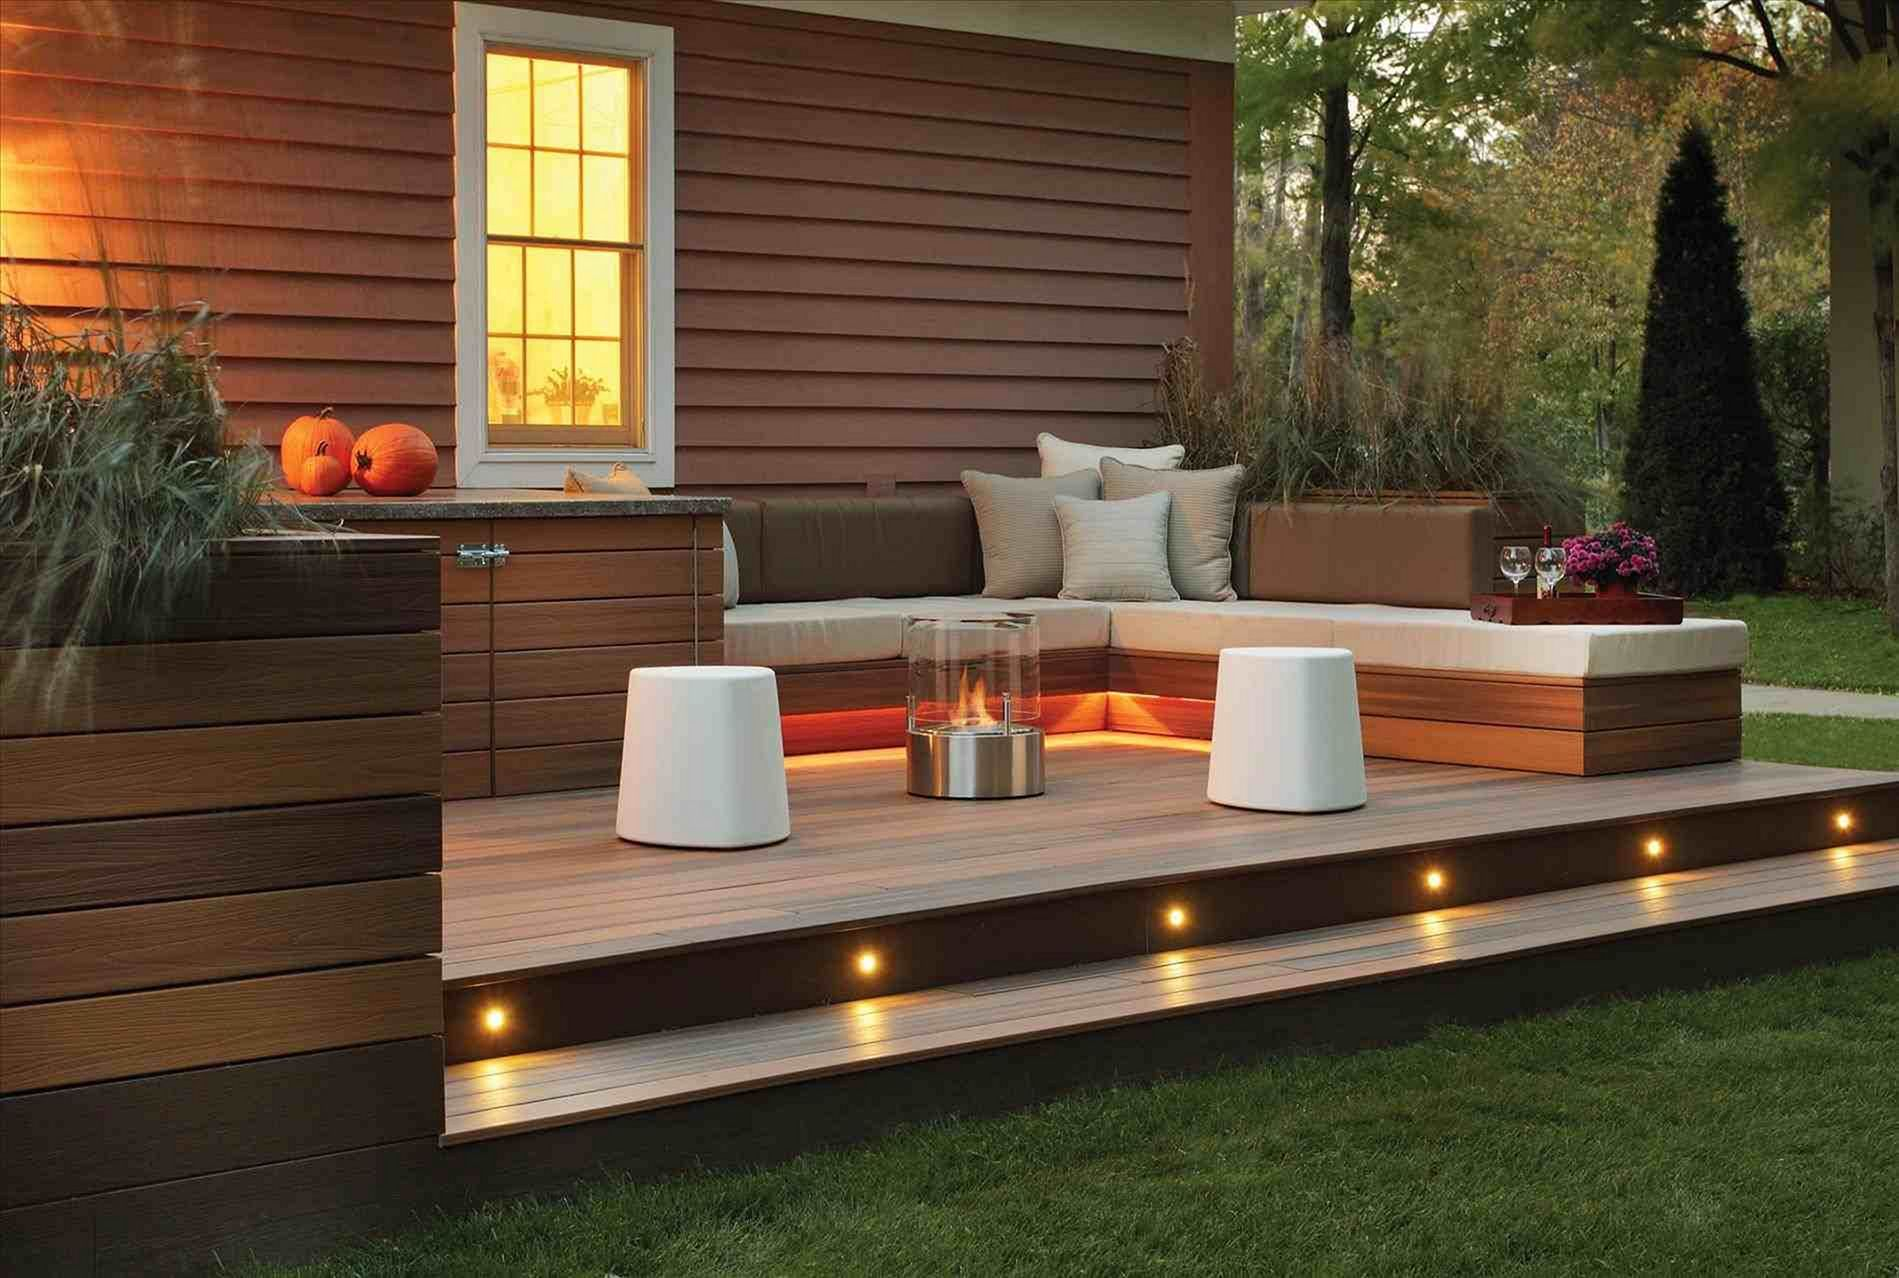 12 clever tricks of how to build backyard wood patio ideas